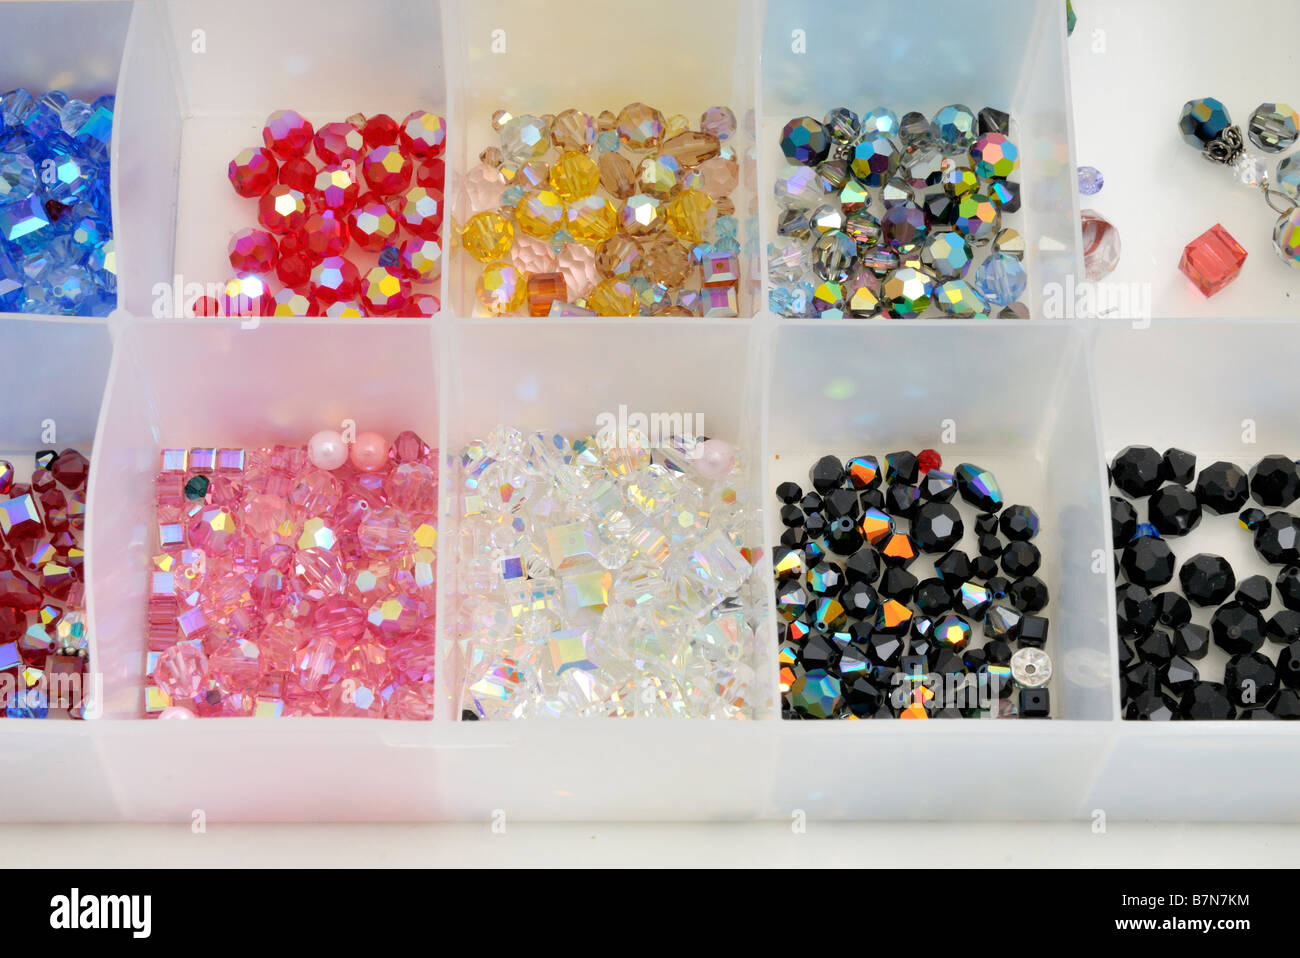 A partitioned plastic container full of Swarovski crystal beads for jewelry-making. USA. - Stock Image